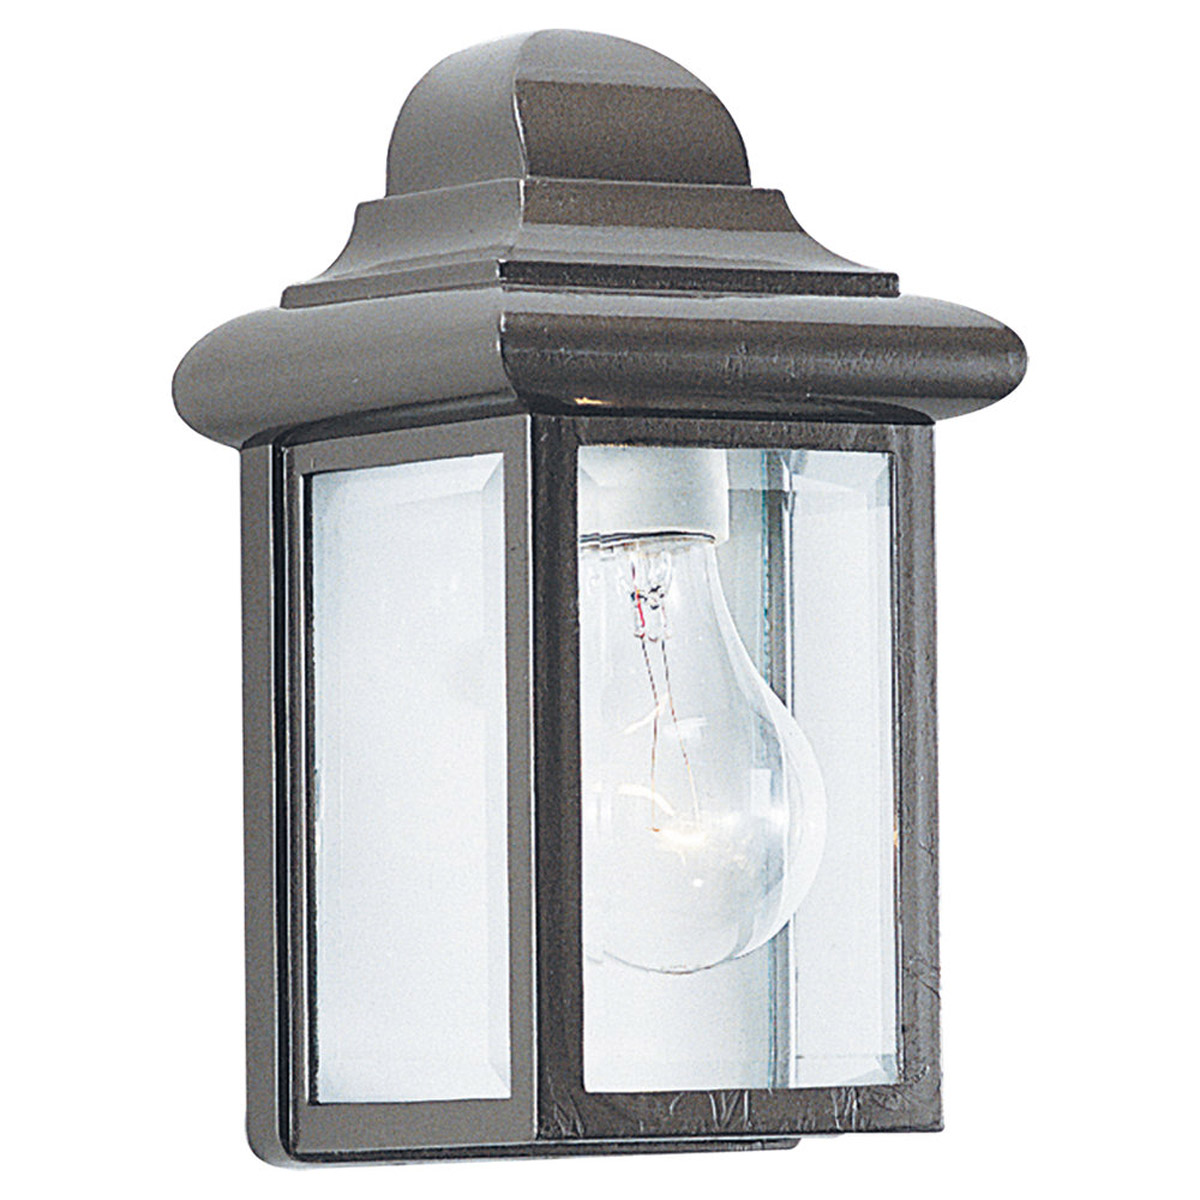 Sea Gull Lighting Mullberry Hill 1 Light Outdoor Wall Lantern in Bronze 8588-10